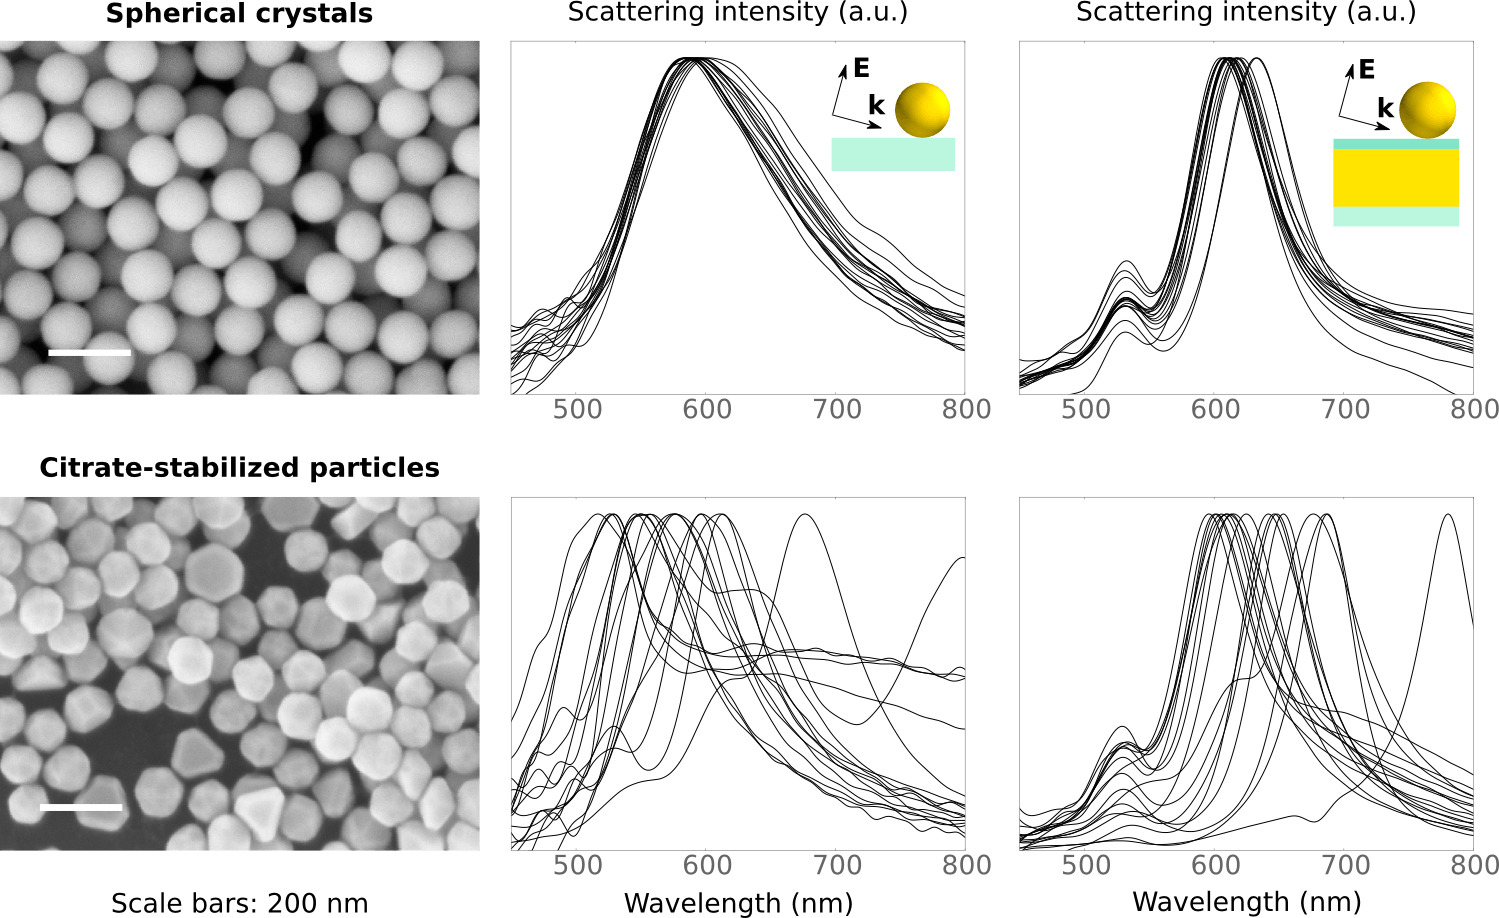 Reproducibility of single particle scattering spectra for spherical crystals compared with conventional gold nanoparticles